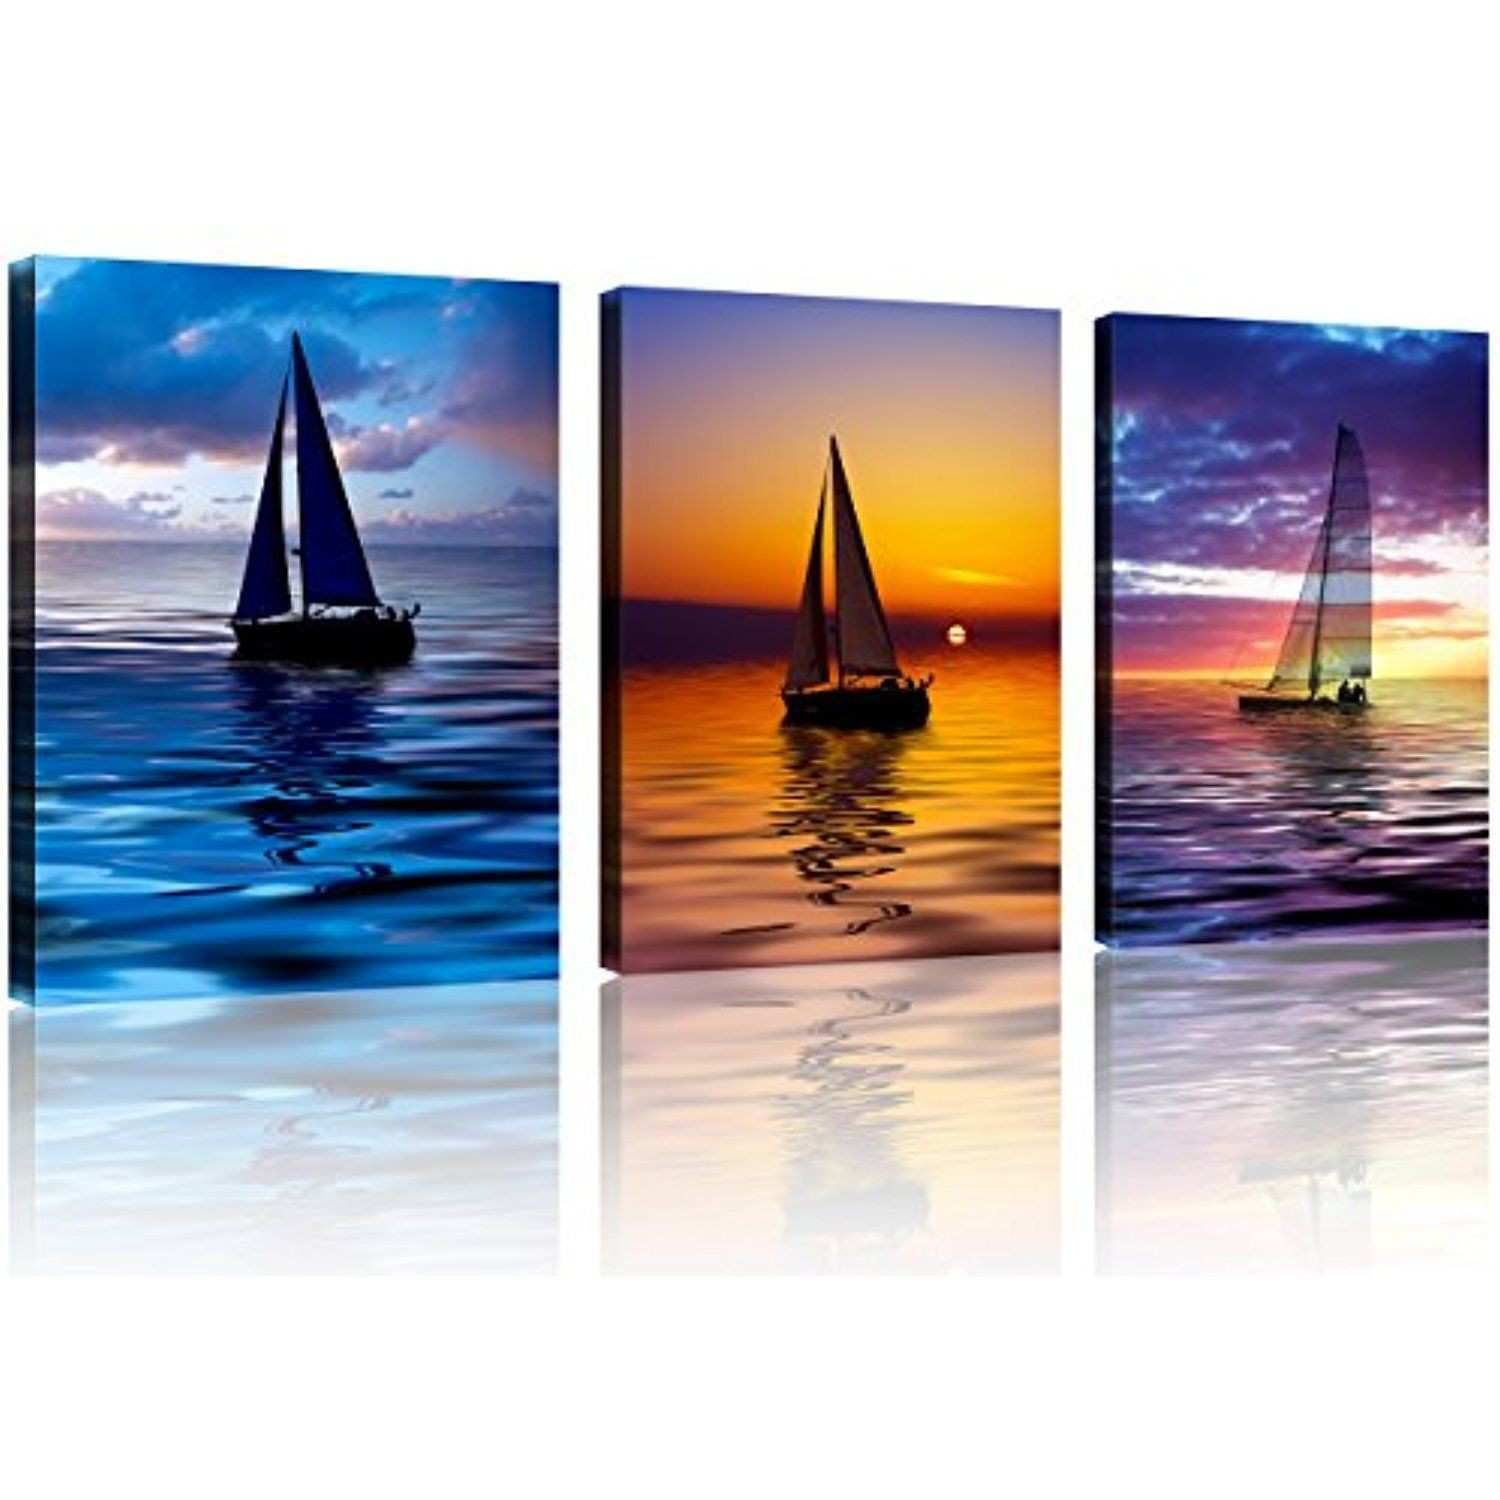 QICAI 3 Panel Colorful Sailboat at Sunset Canvas Print Ready to